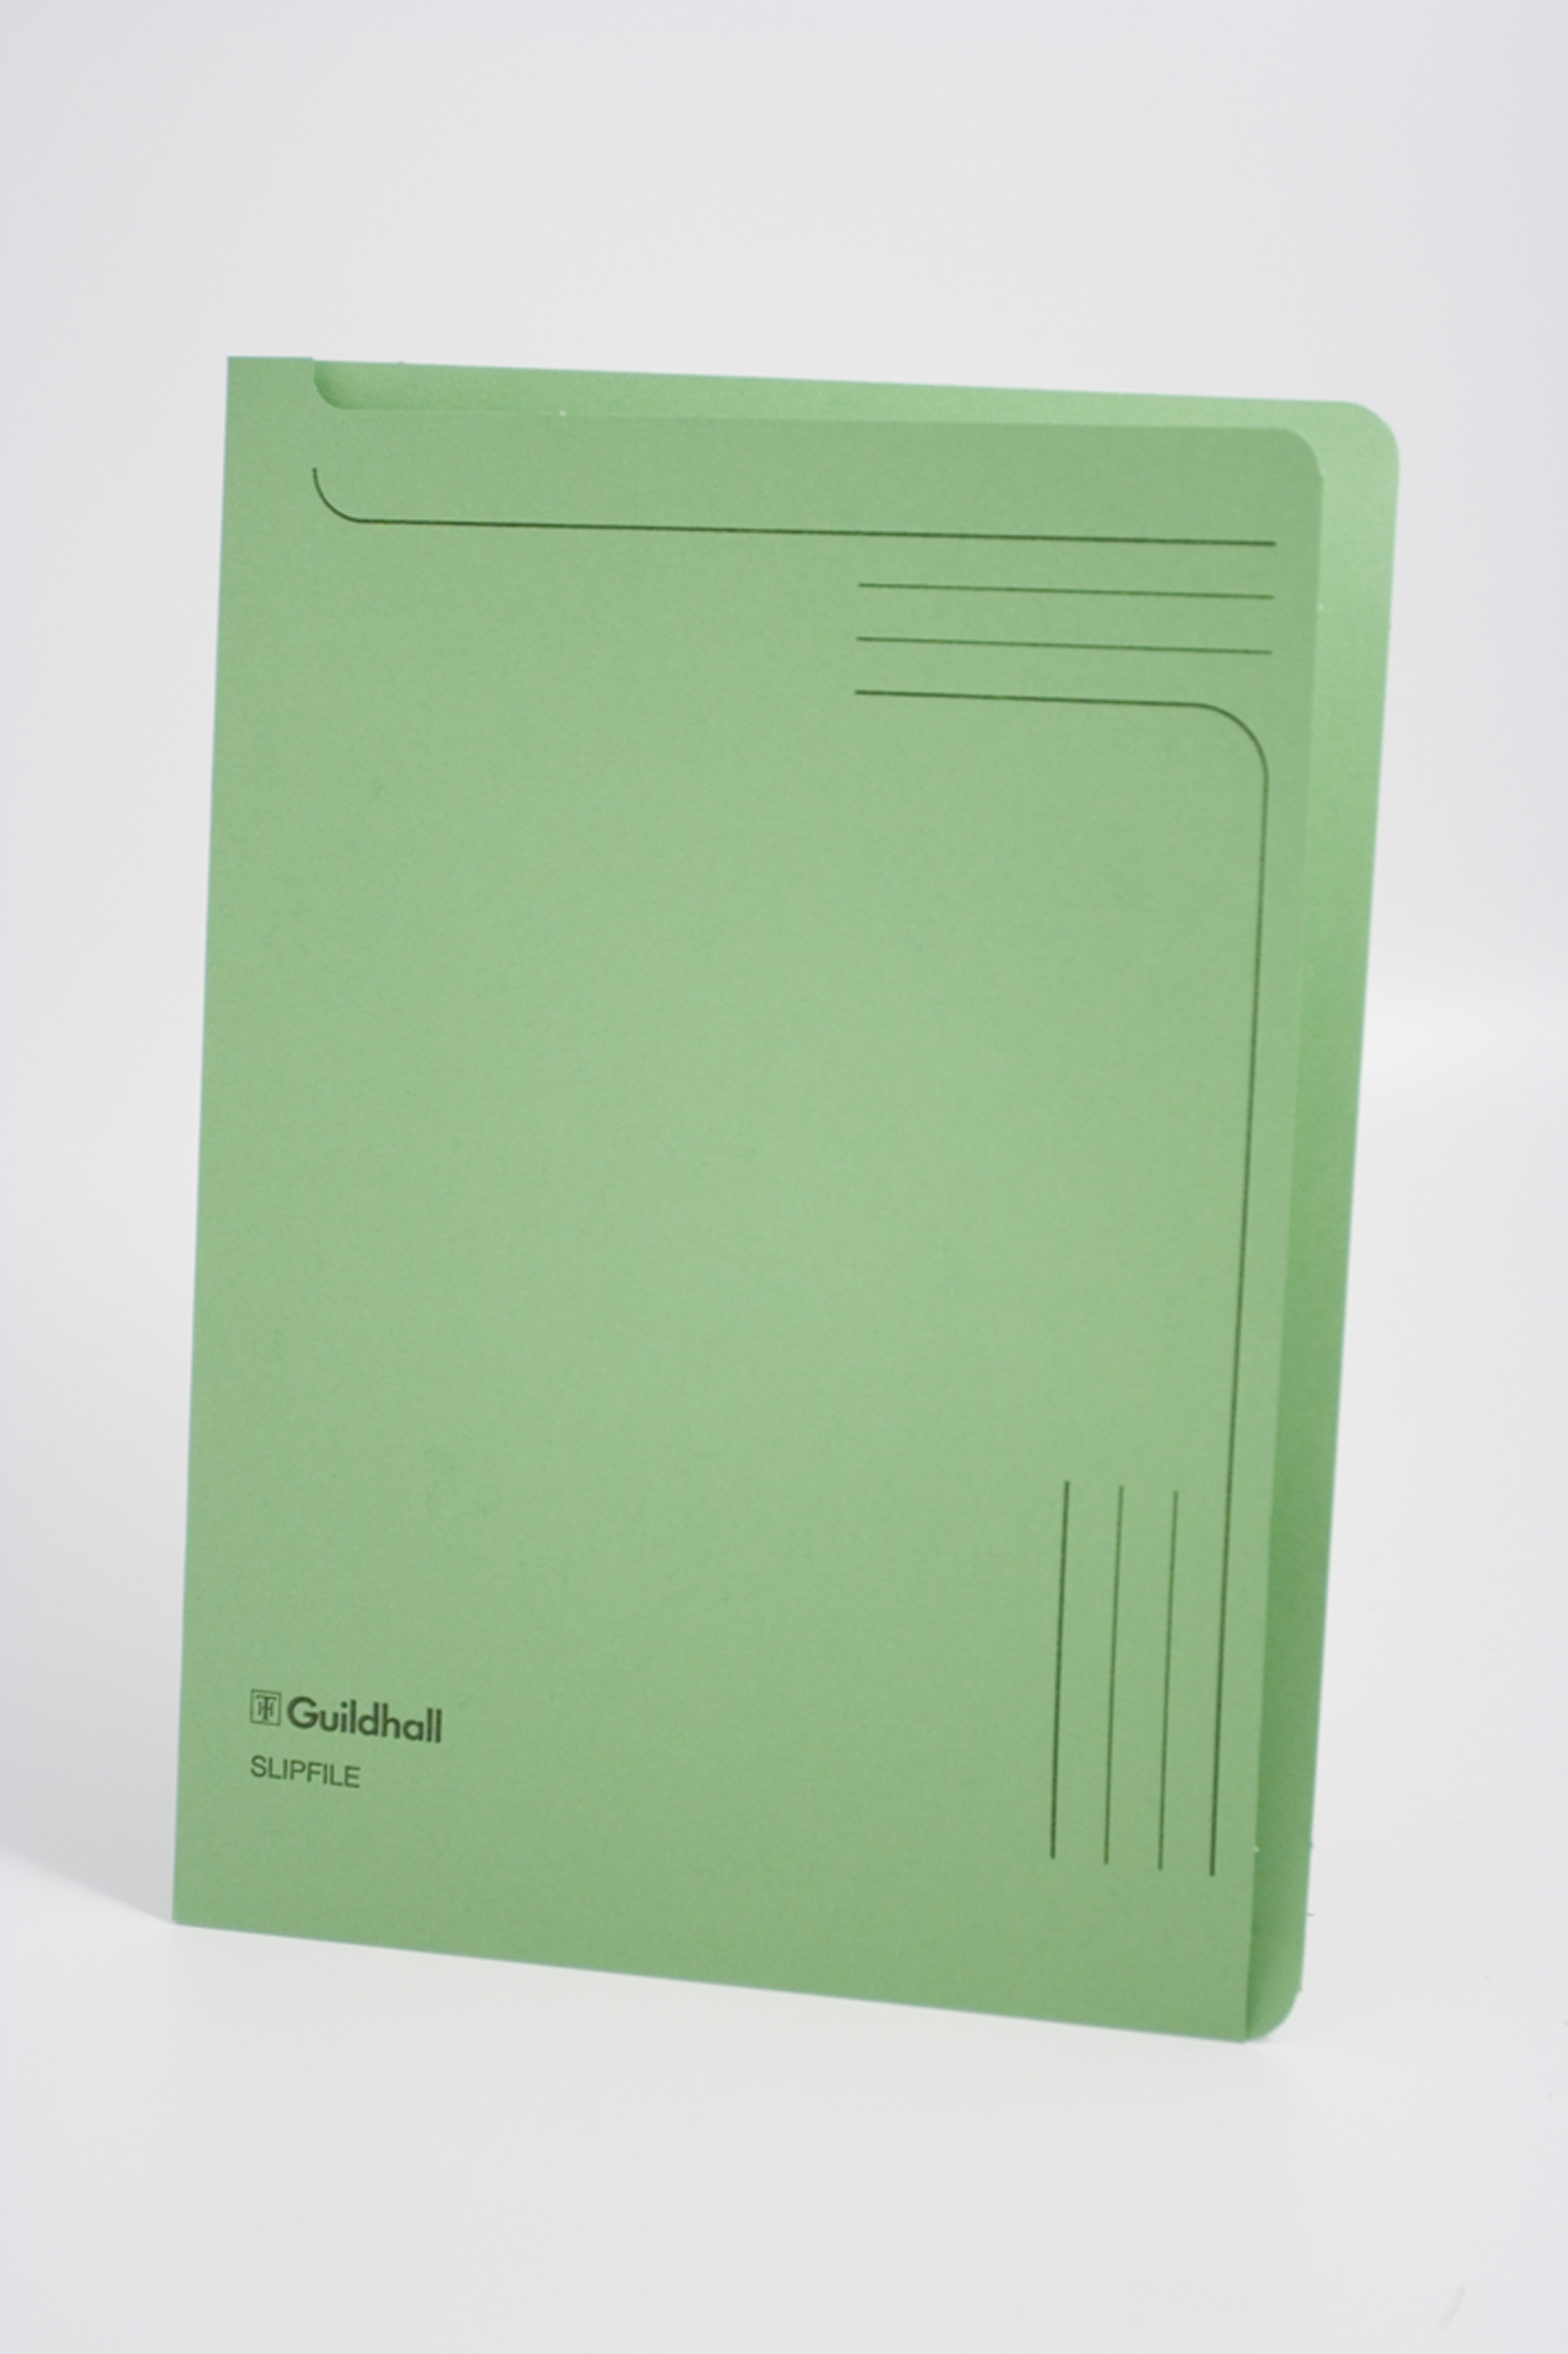 Guildhall Slipfile A4 GN PK50